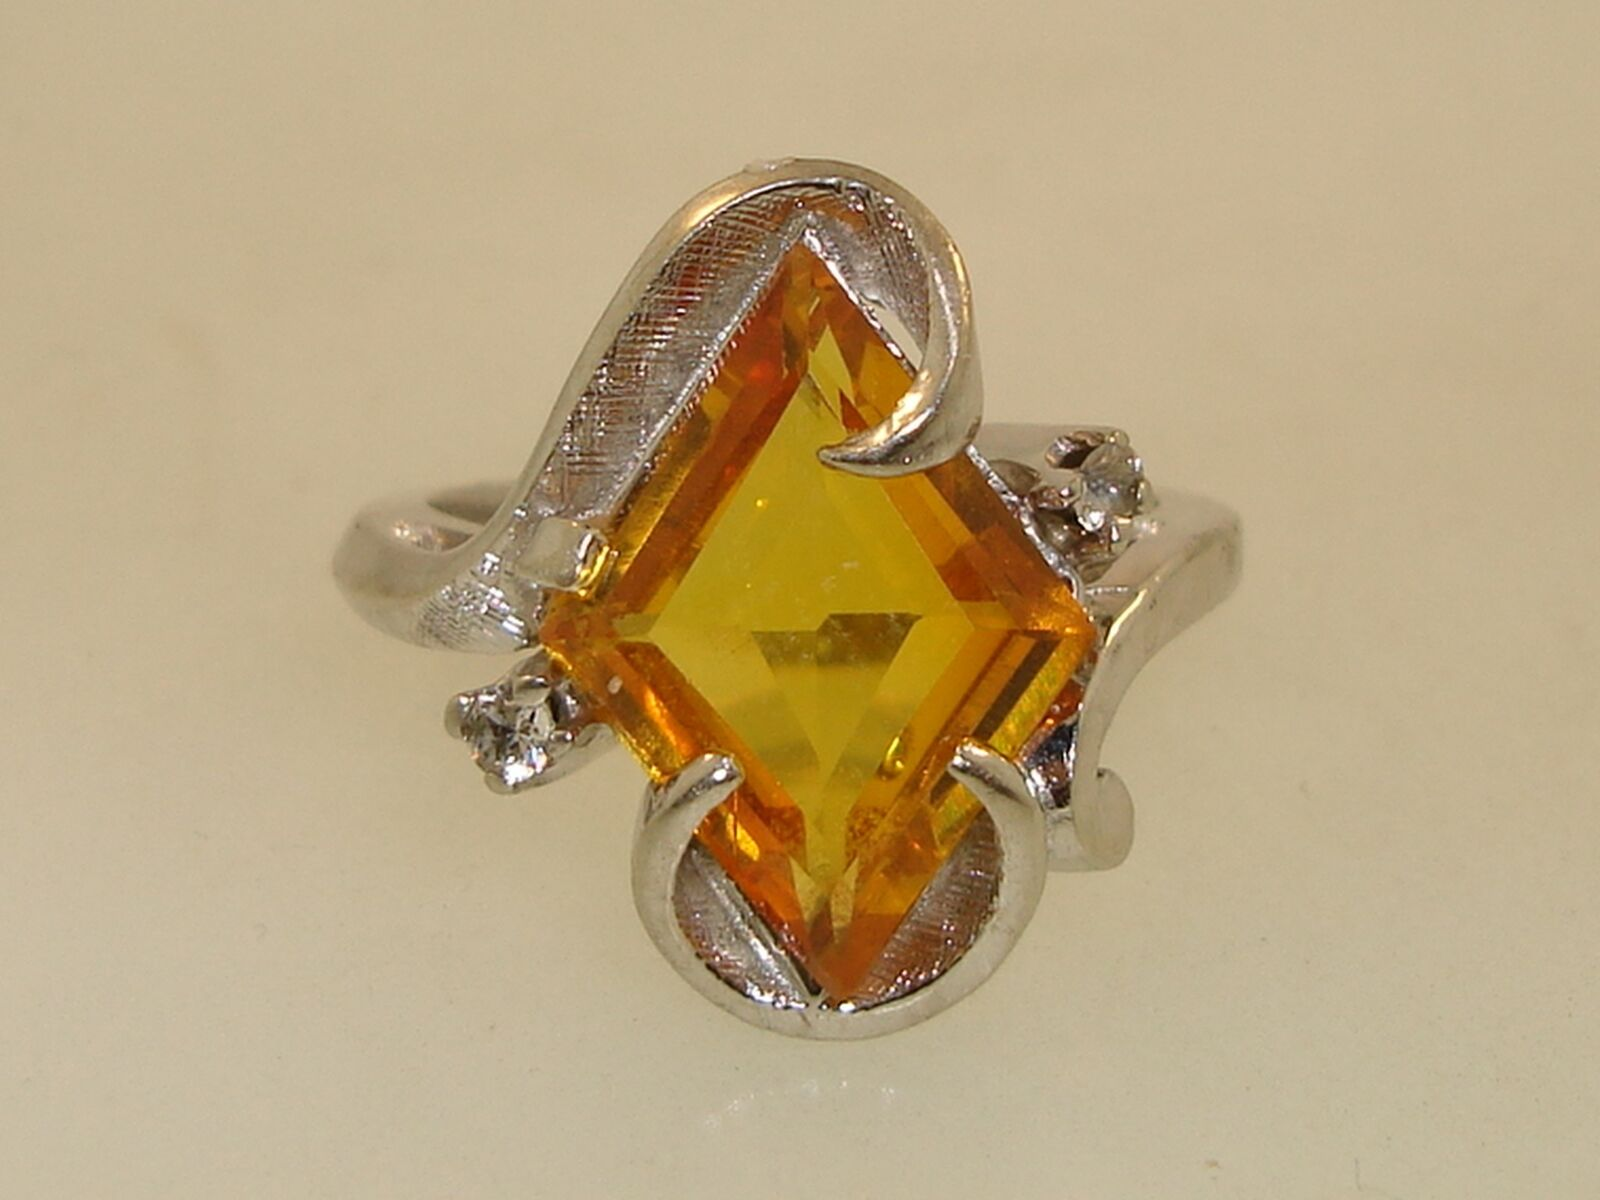 1940'S RETRO 10K WHITE gold APPROX. 4 CTW YELLOW SAPPHIRE RING  RARE CUT STONE